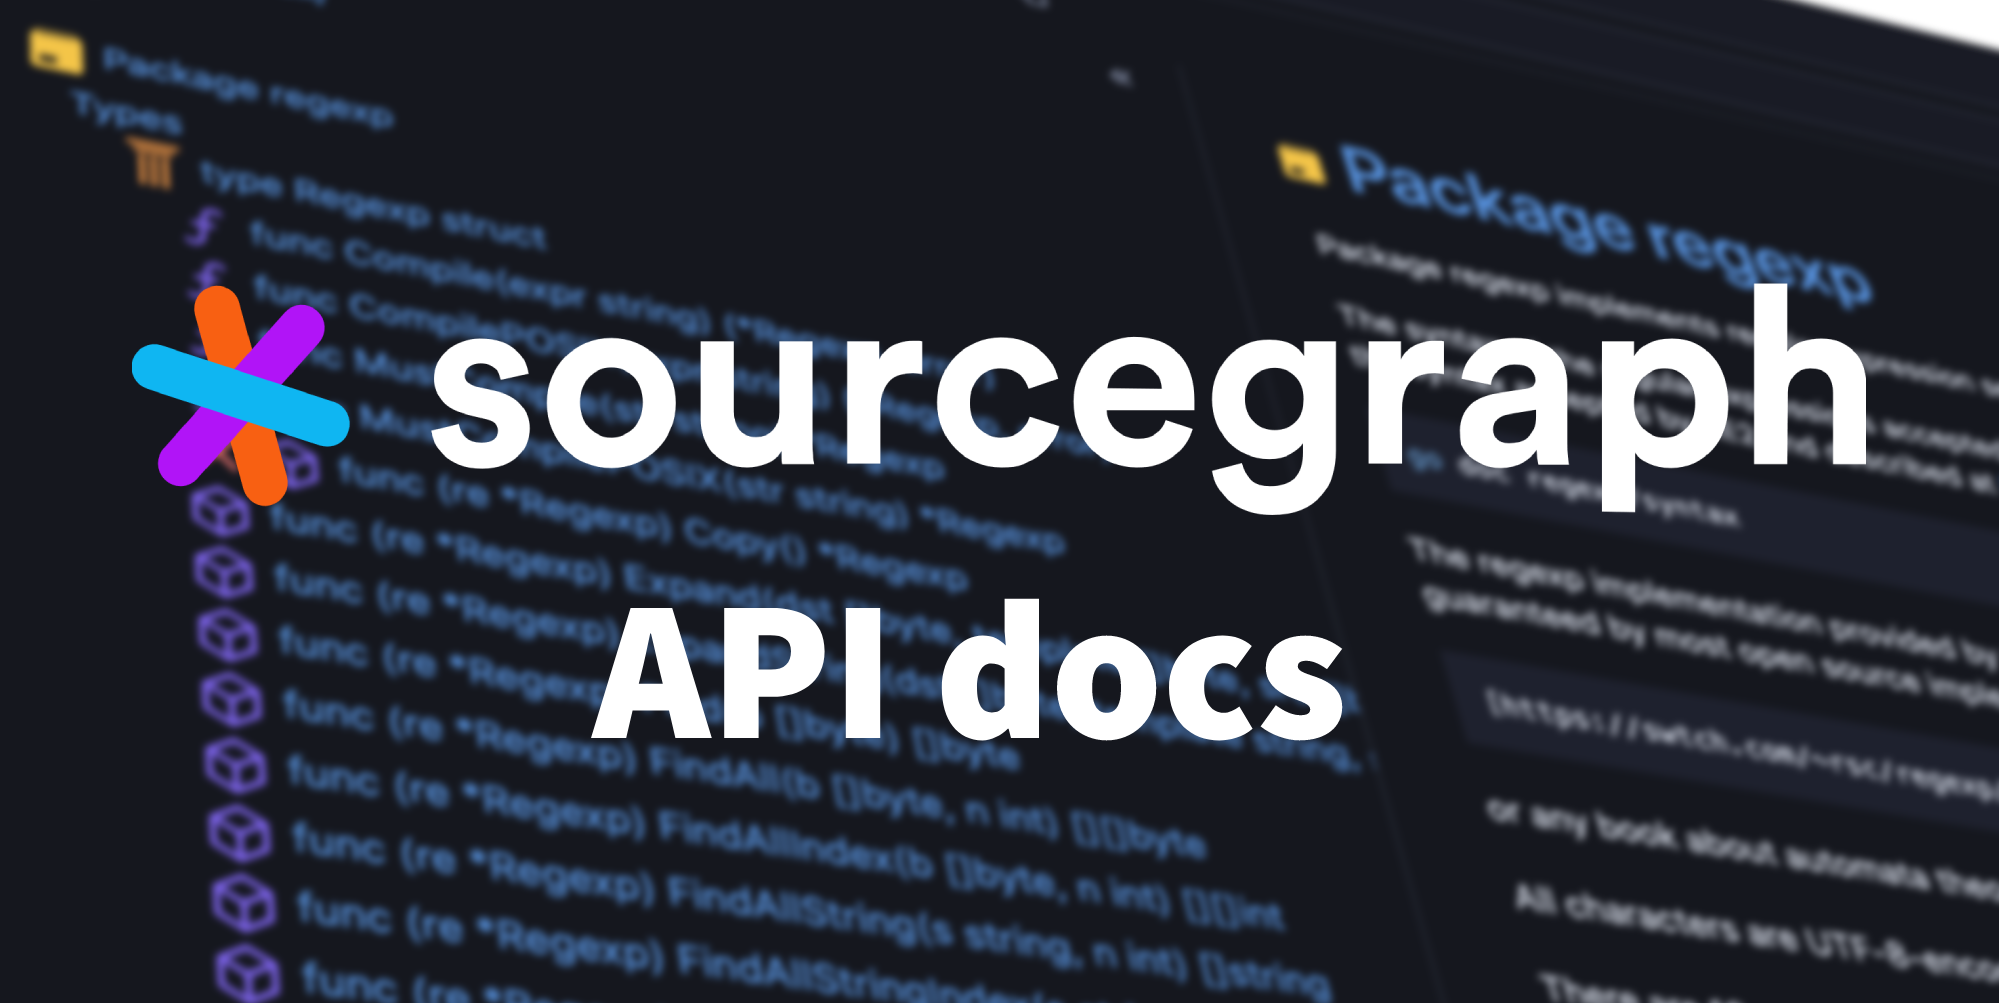 Sneak peek: API documentation generated for all your code